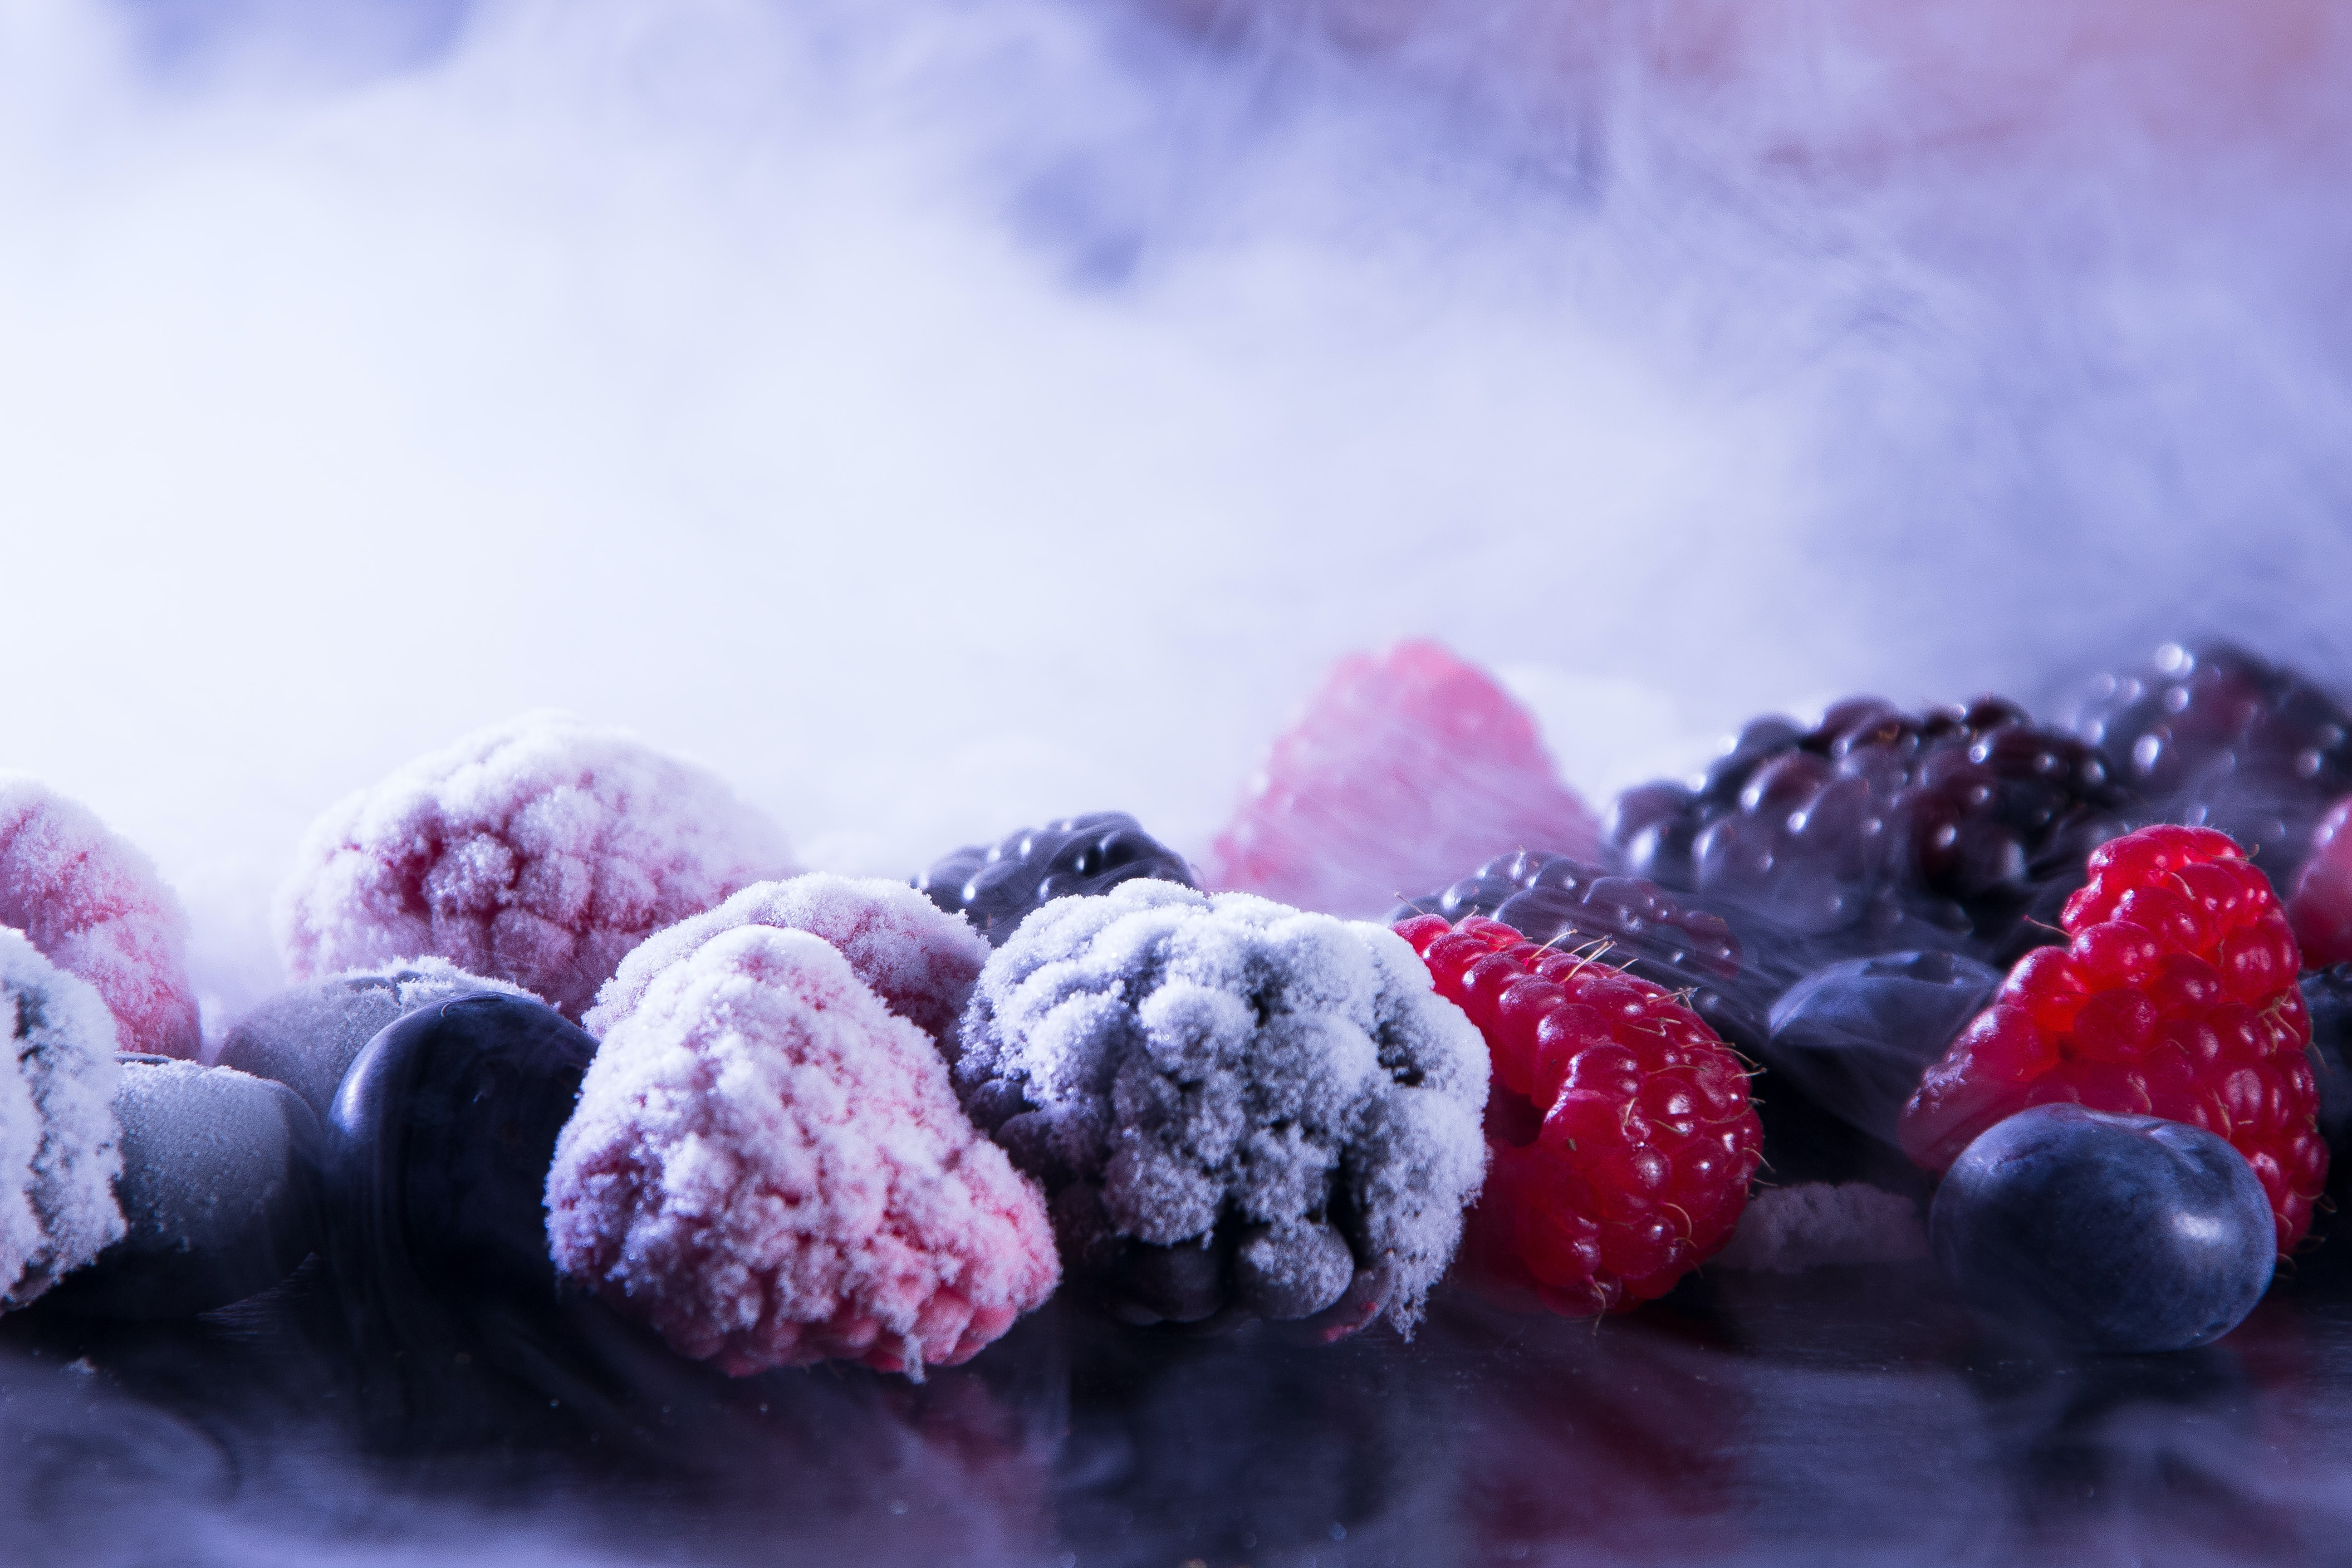 frozen blueberries, raspberries, and blackberries